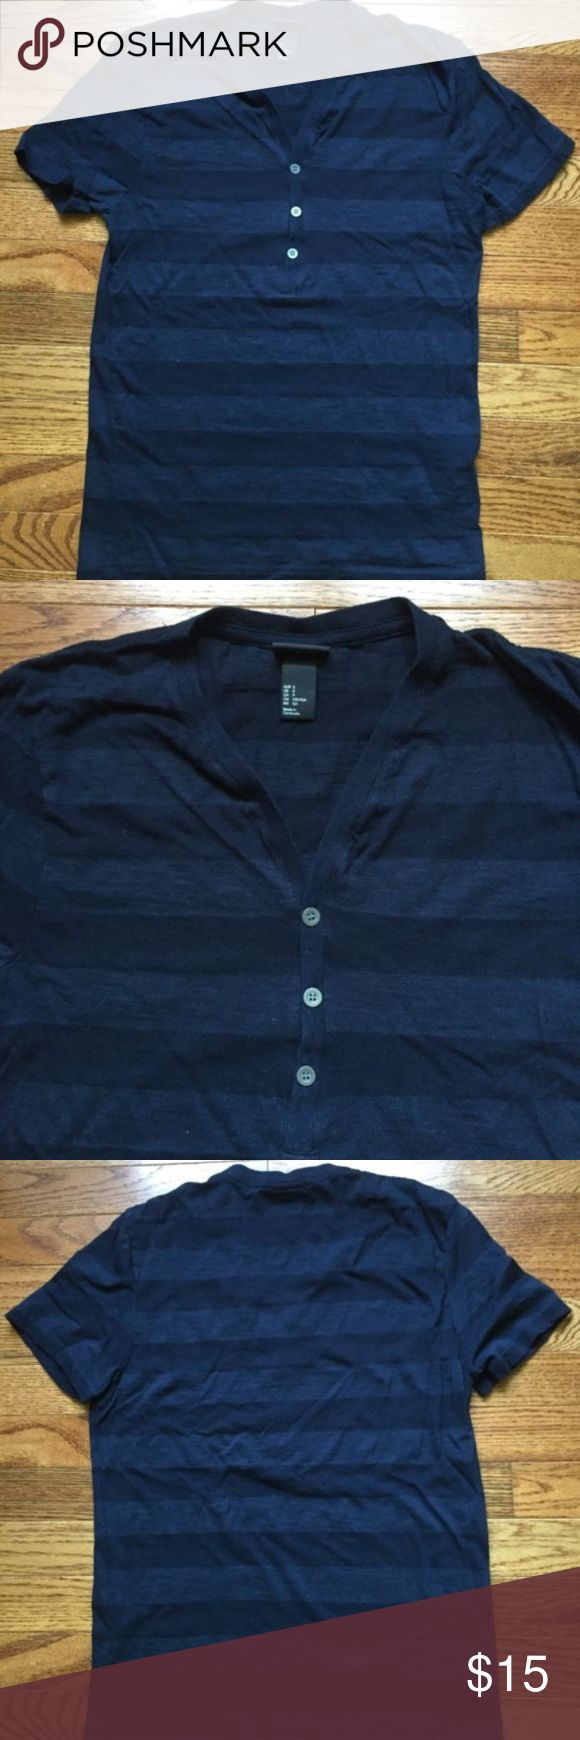 H&M mens navy blue shortsleeve henley size small H&M men's short sleeve Henley size small 3 button Navy Blue striped  74%cotton/26%modal  Smoke free H&M Shirts Tees - Short Sleeve